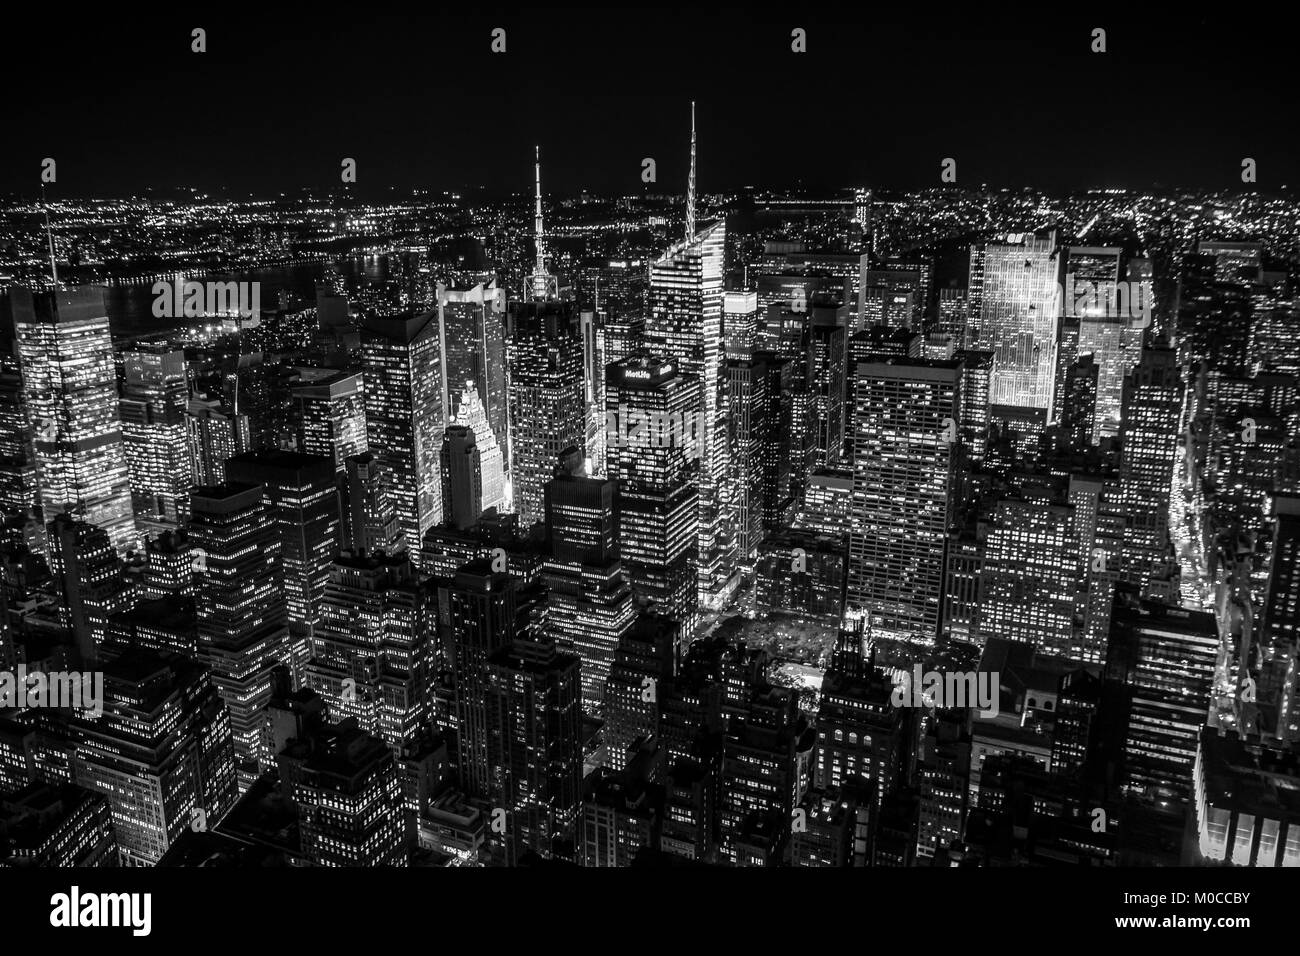 A view of New York City's skyline looking towards Time Square from the Empire State Building. - Stock Image